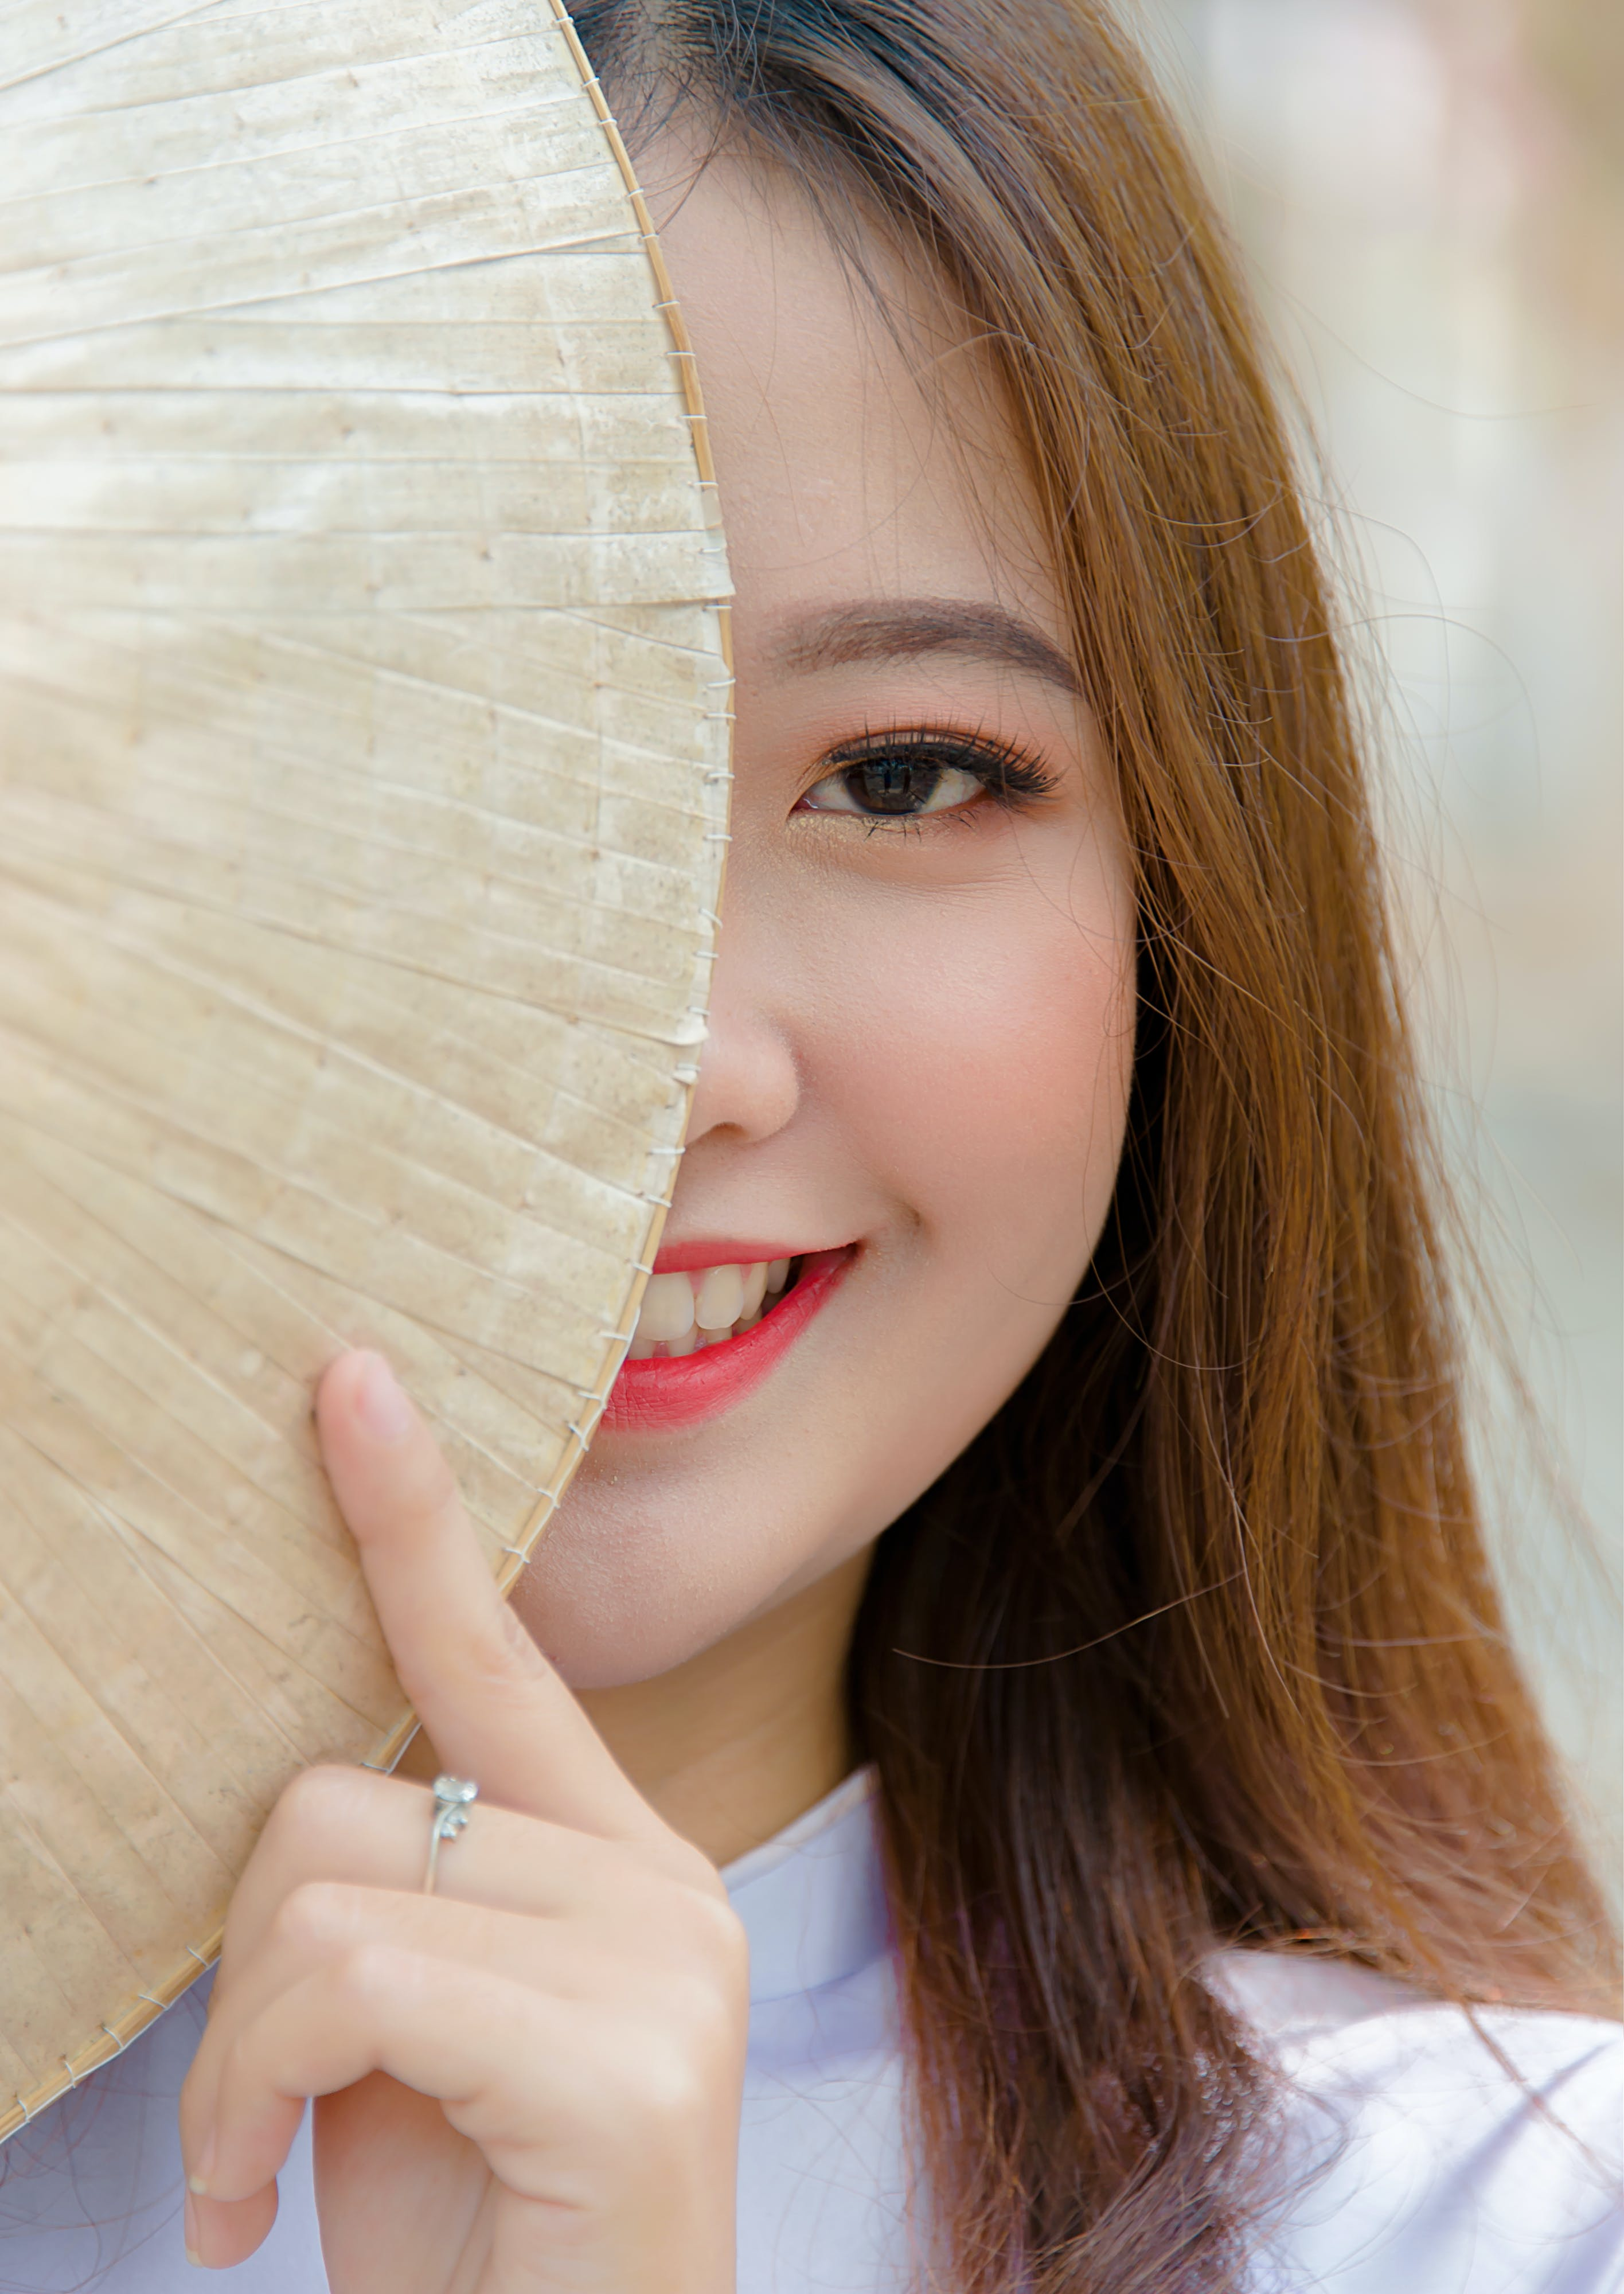 Photo Woman Hiding on Asian Conical Hat